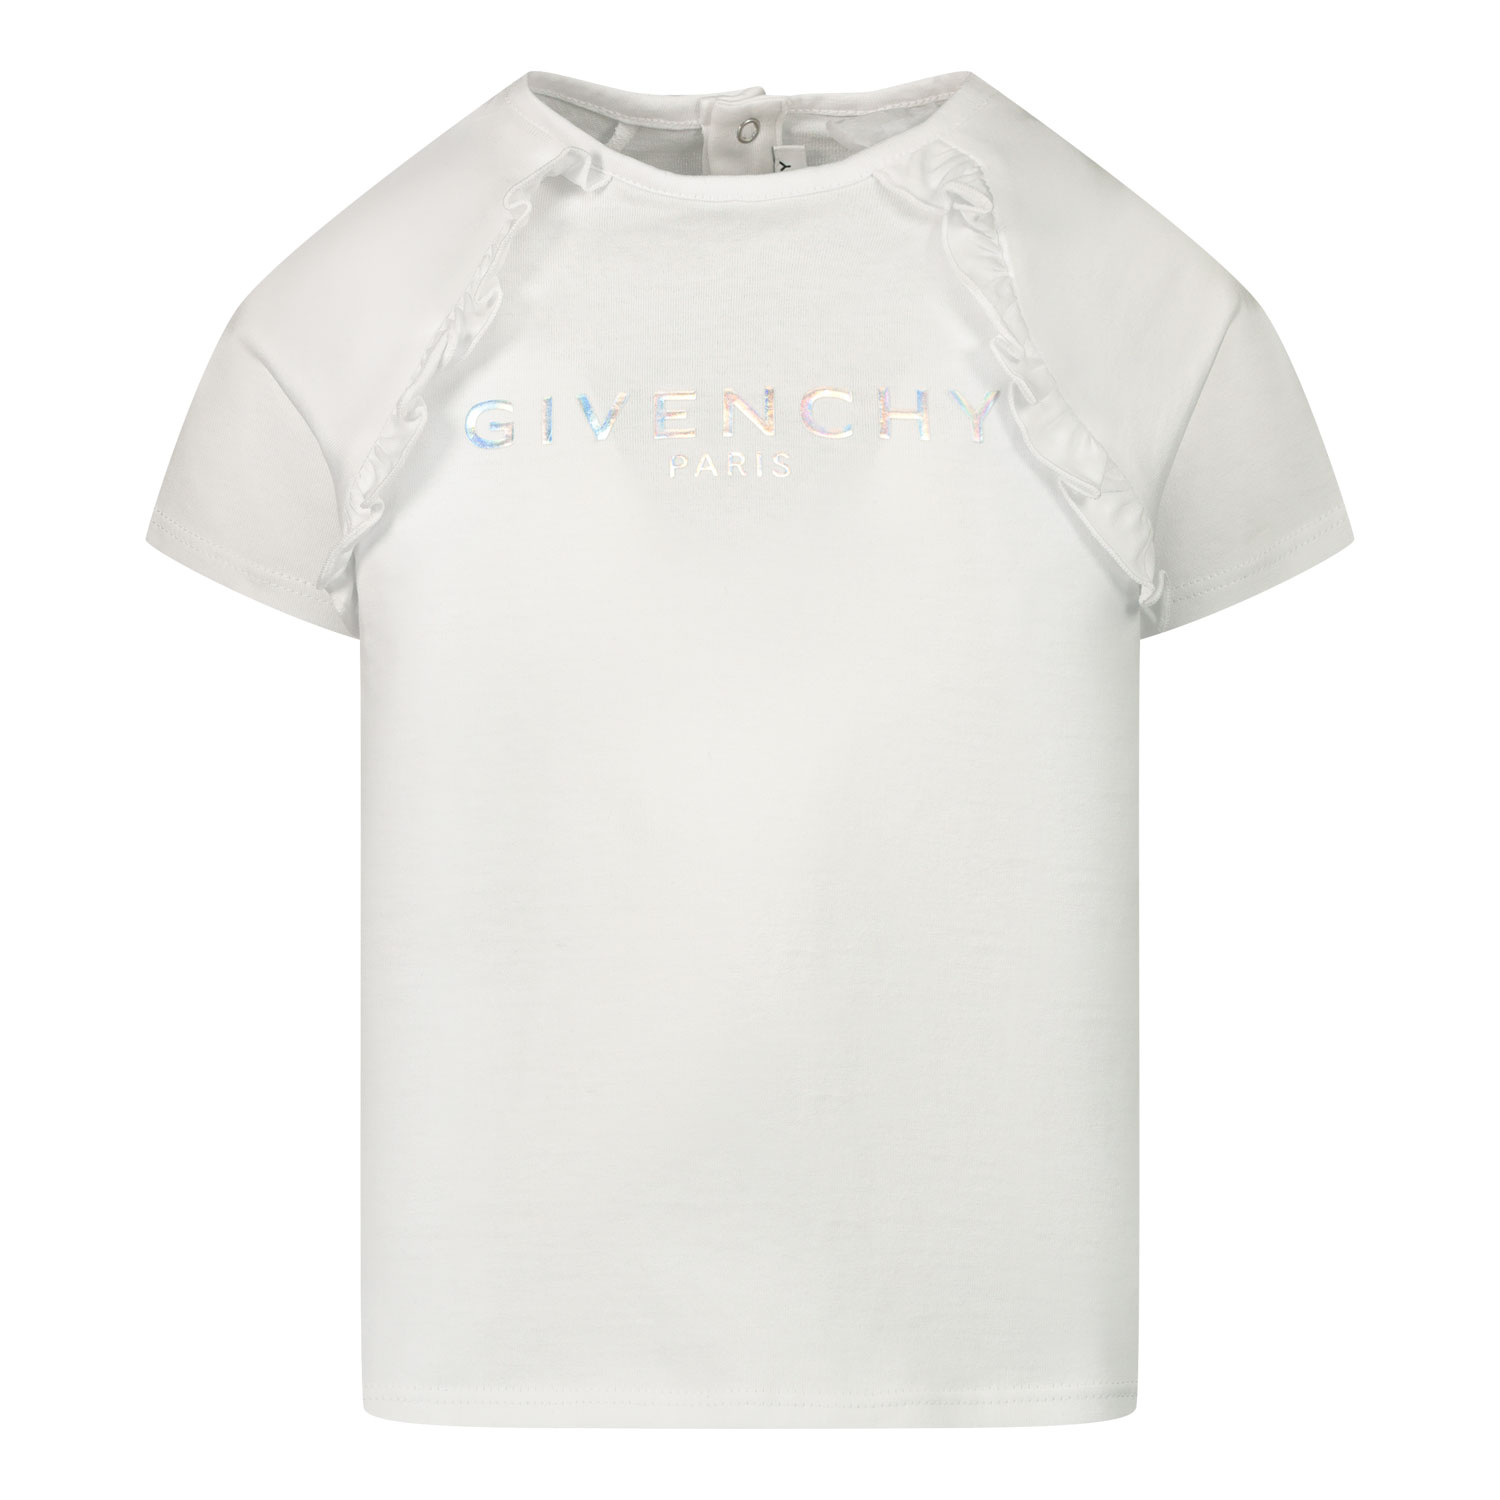 Afbeelding van Givenchy H05168 baby t-shirt wit